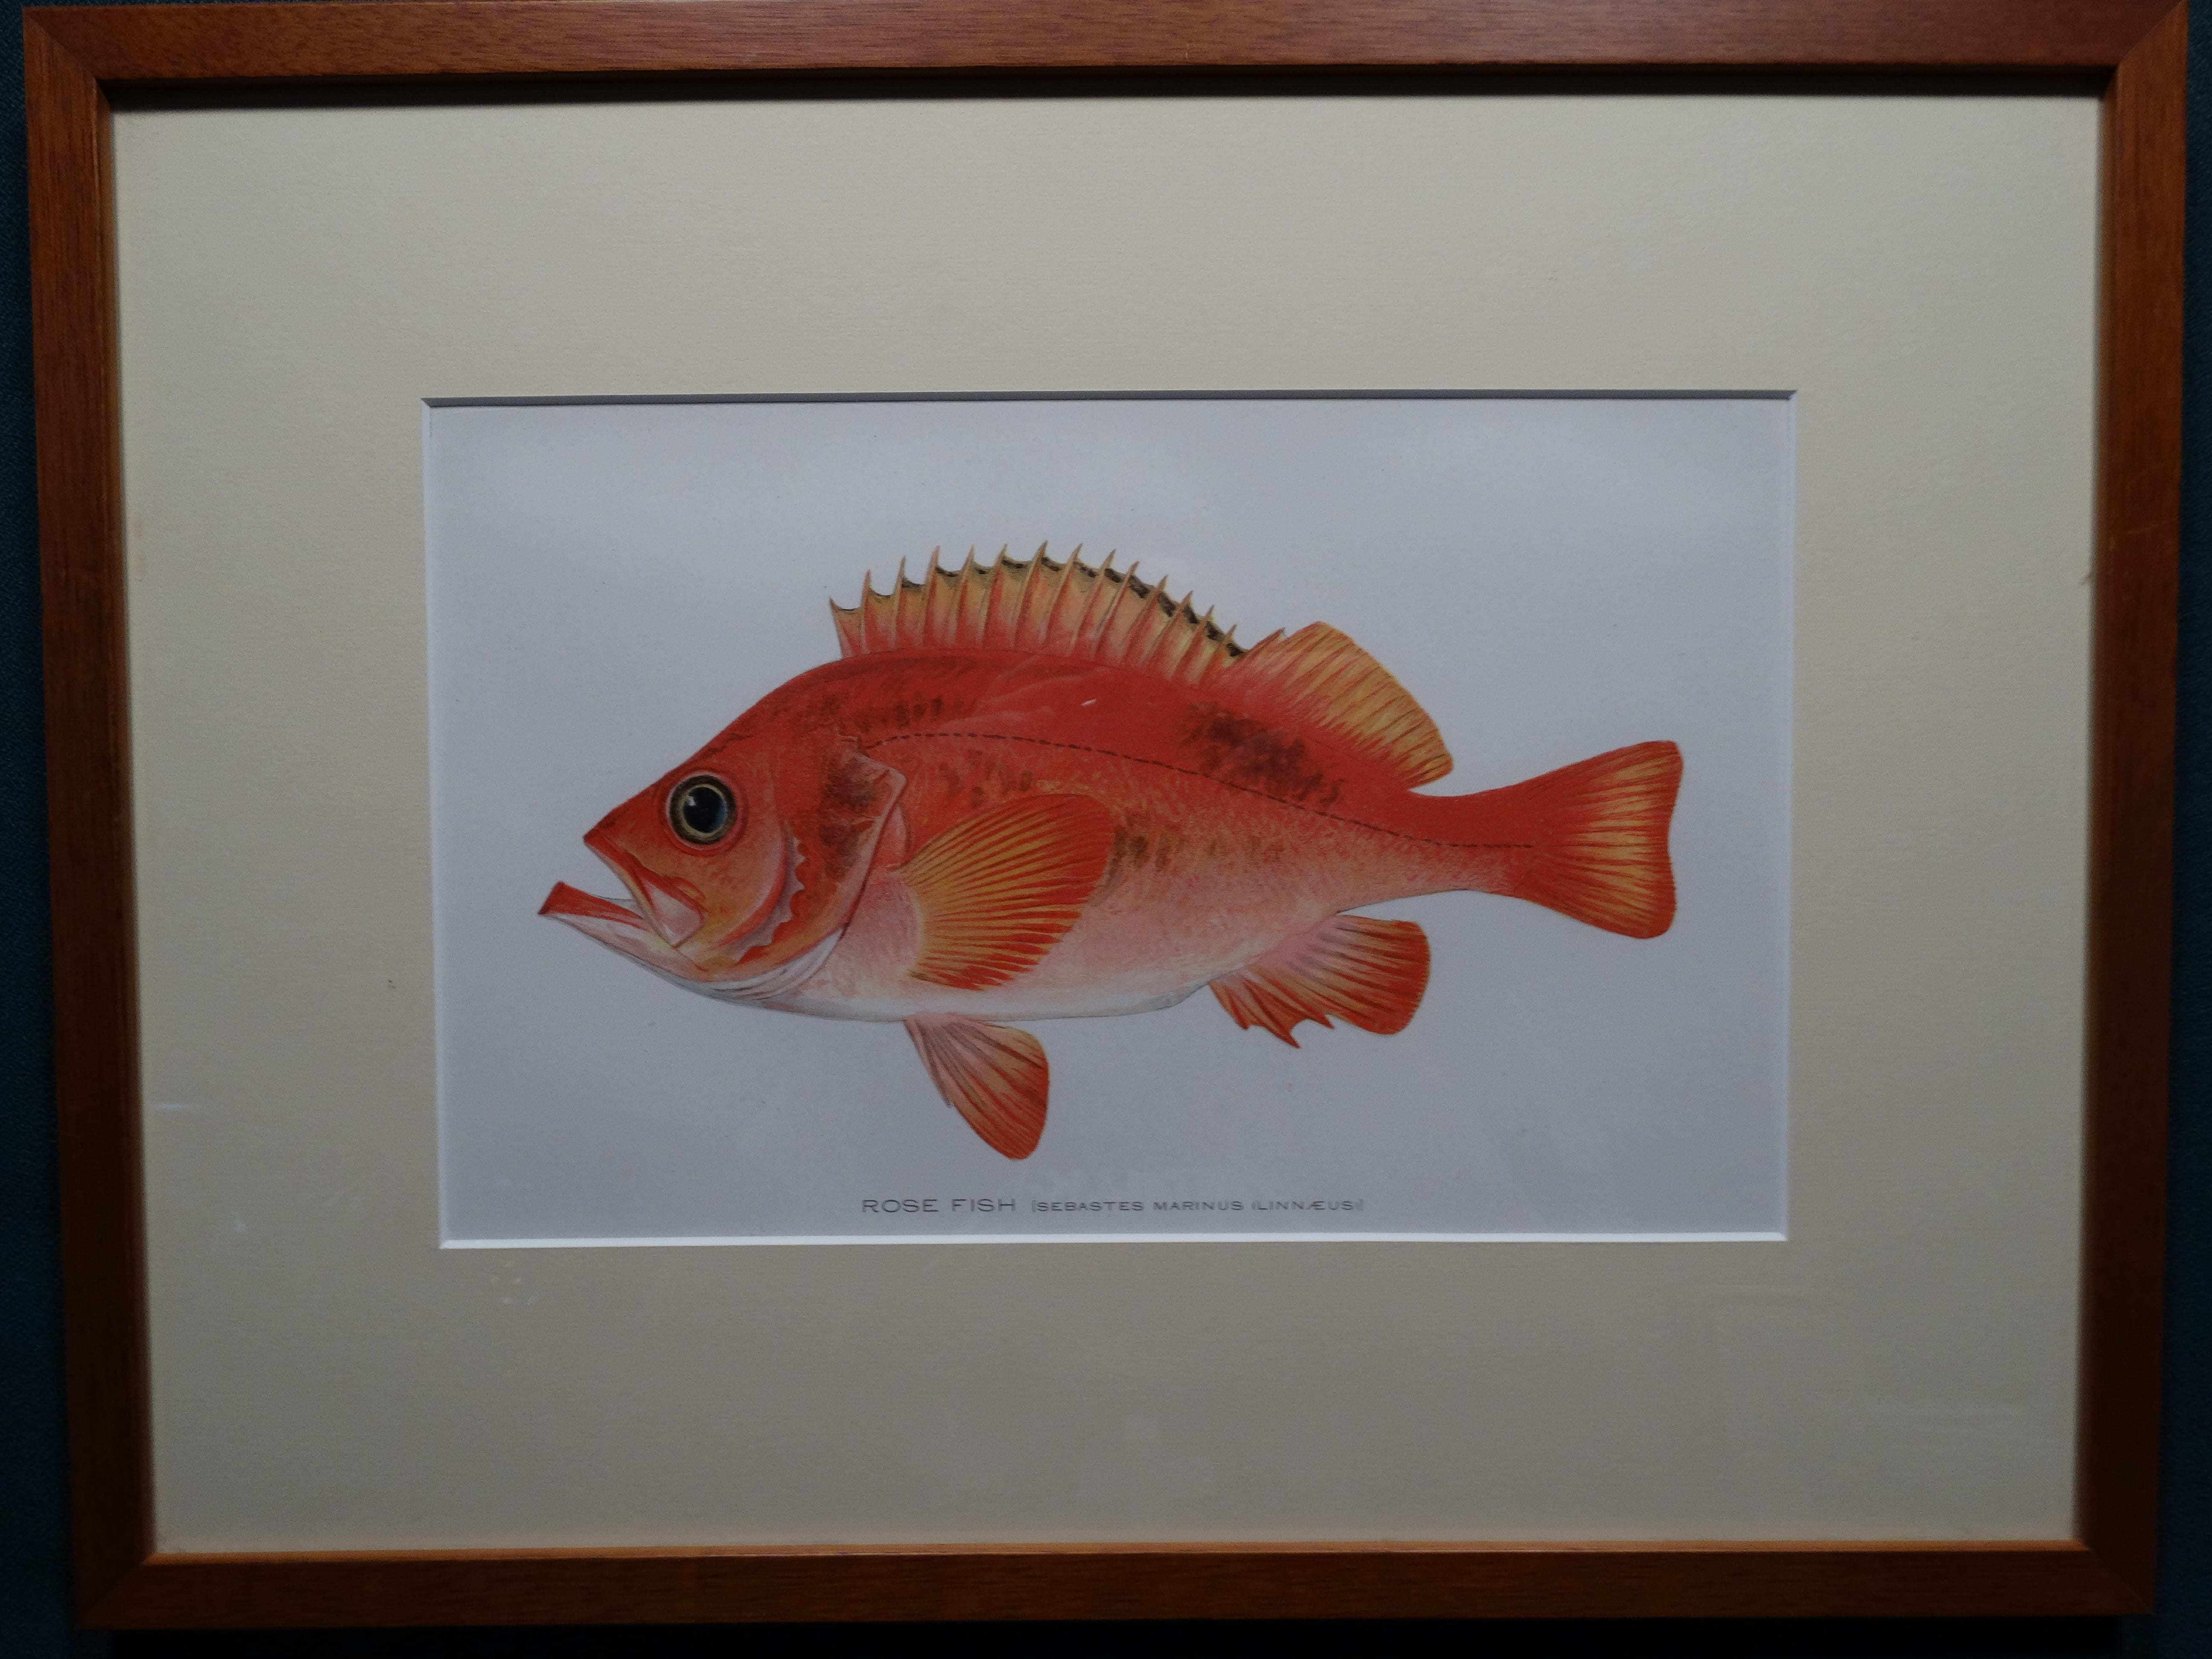 Rose Fish by Denton Framed $115. with free US shipping